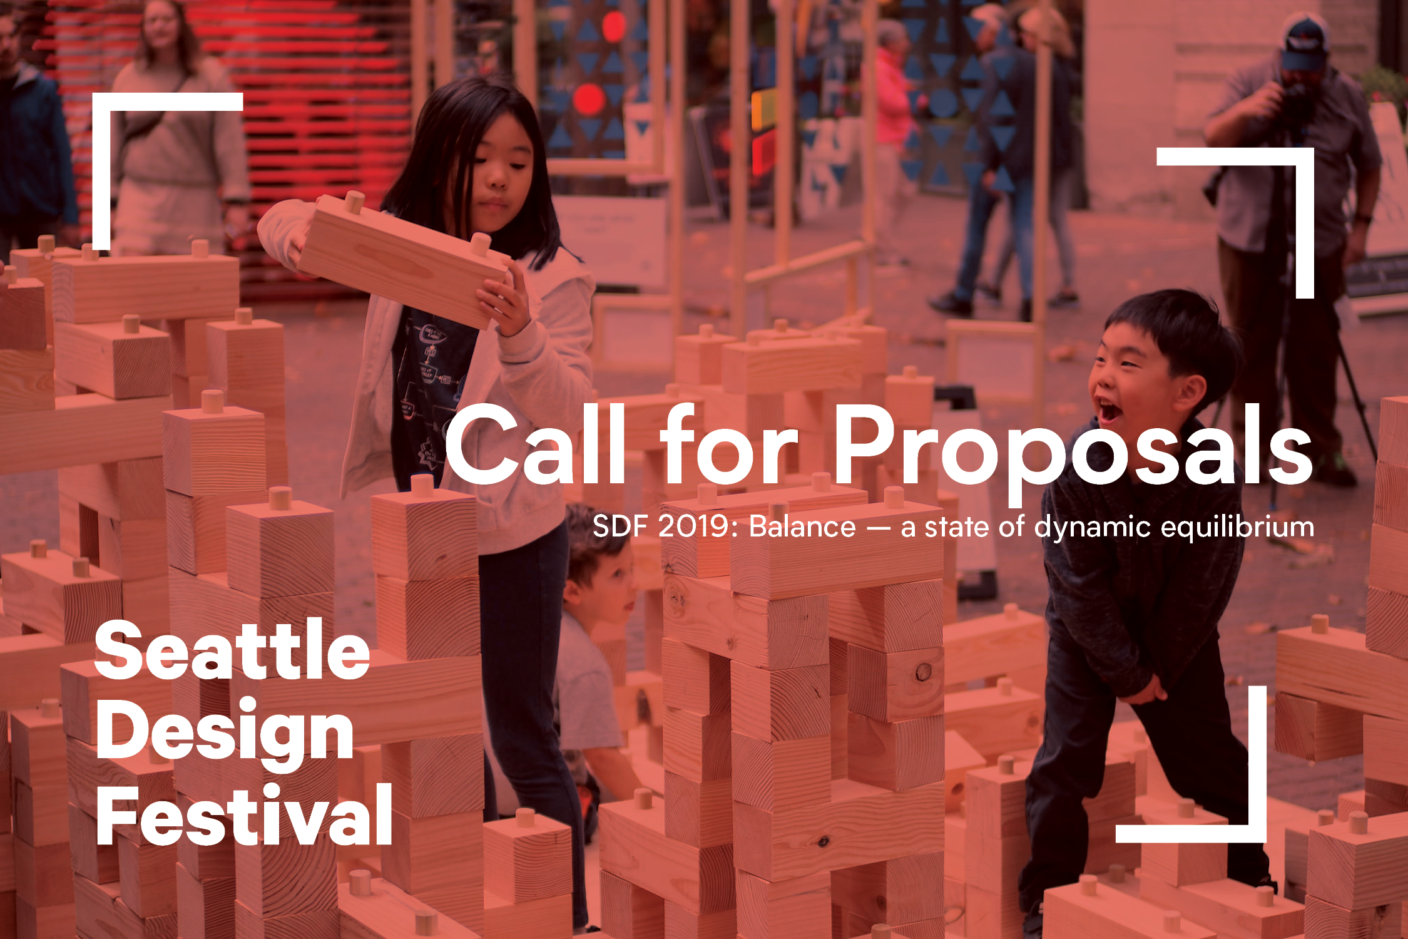 SDF 2019 Call For Proposals